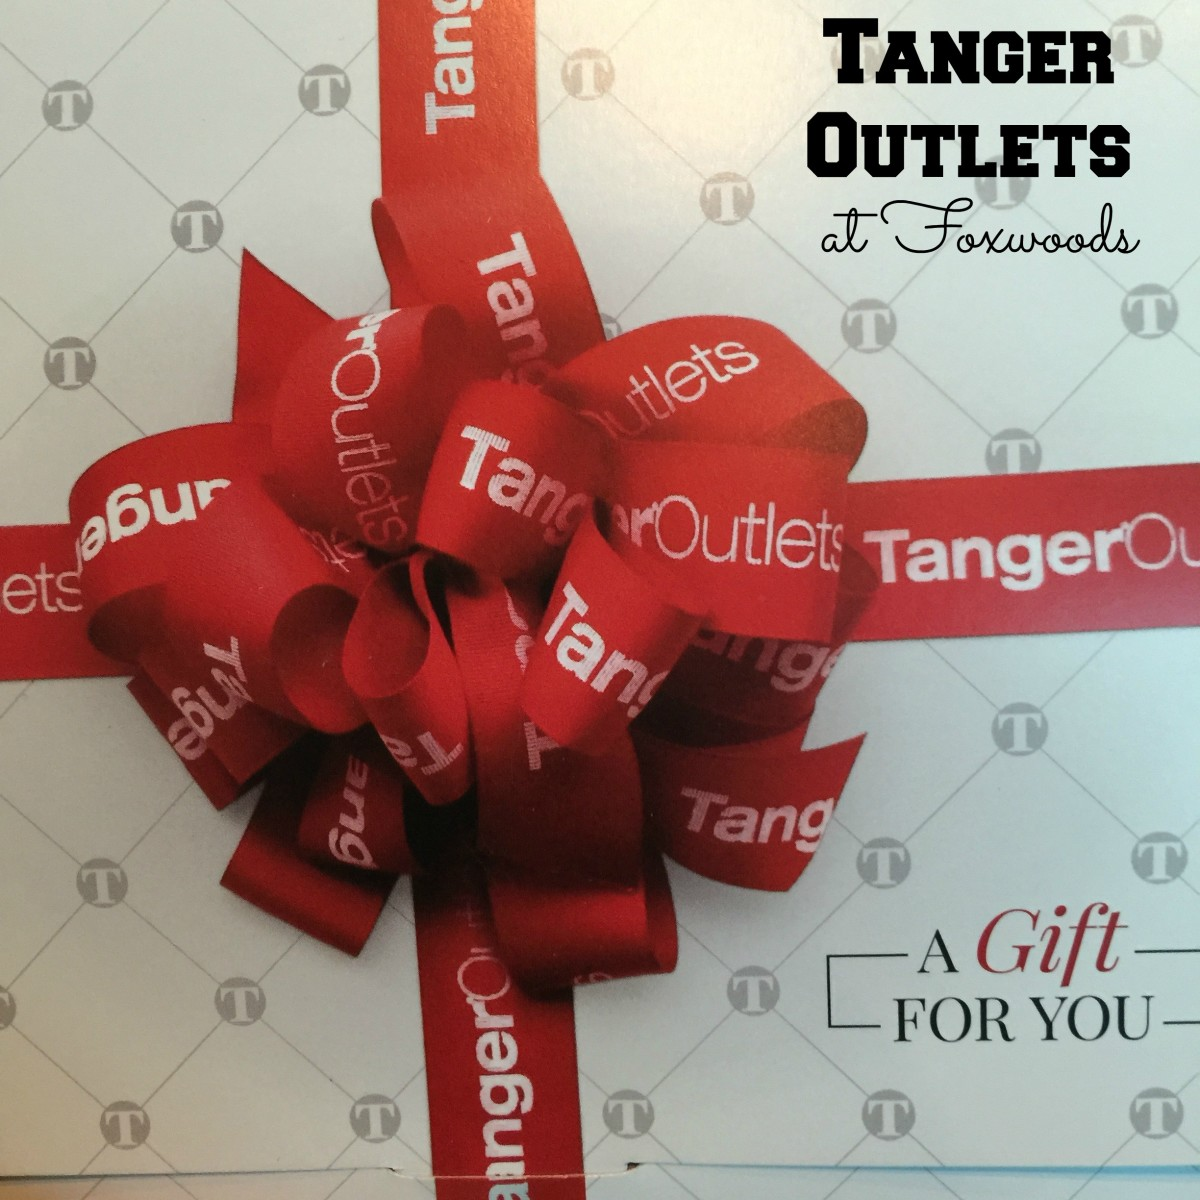 Tanger Outlets at Foxwoods in CT